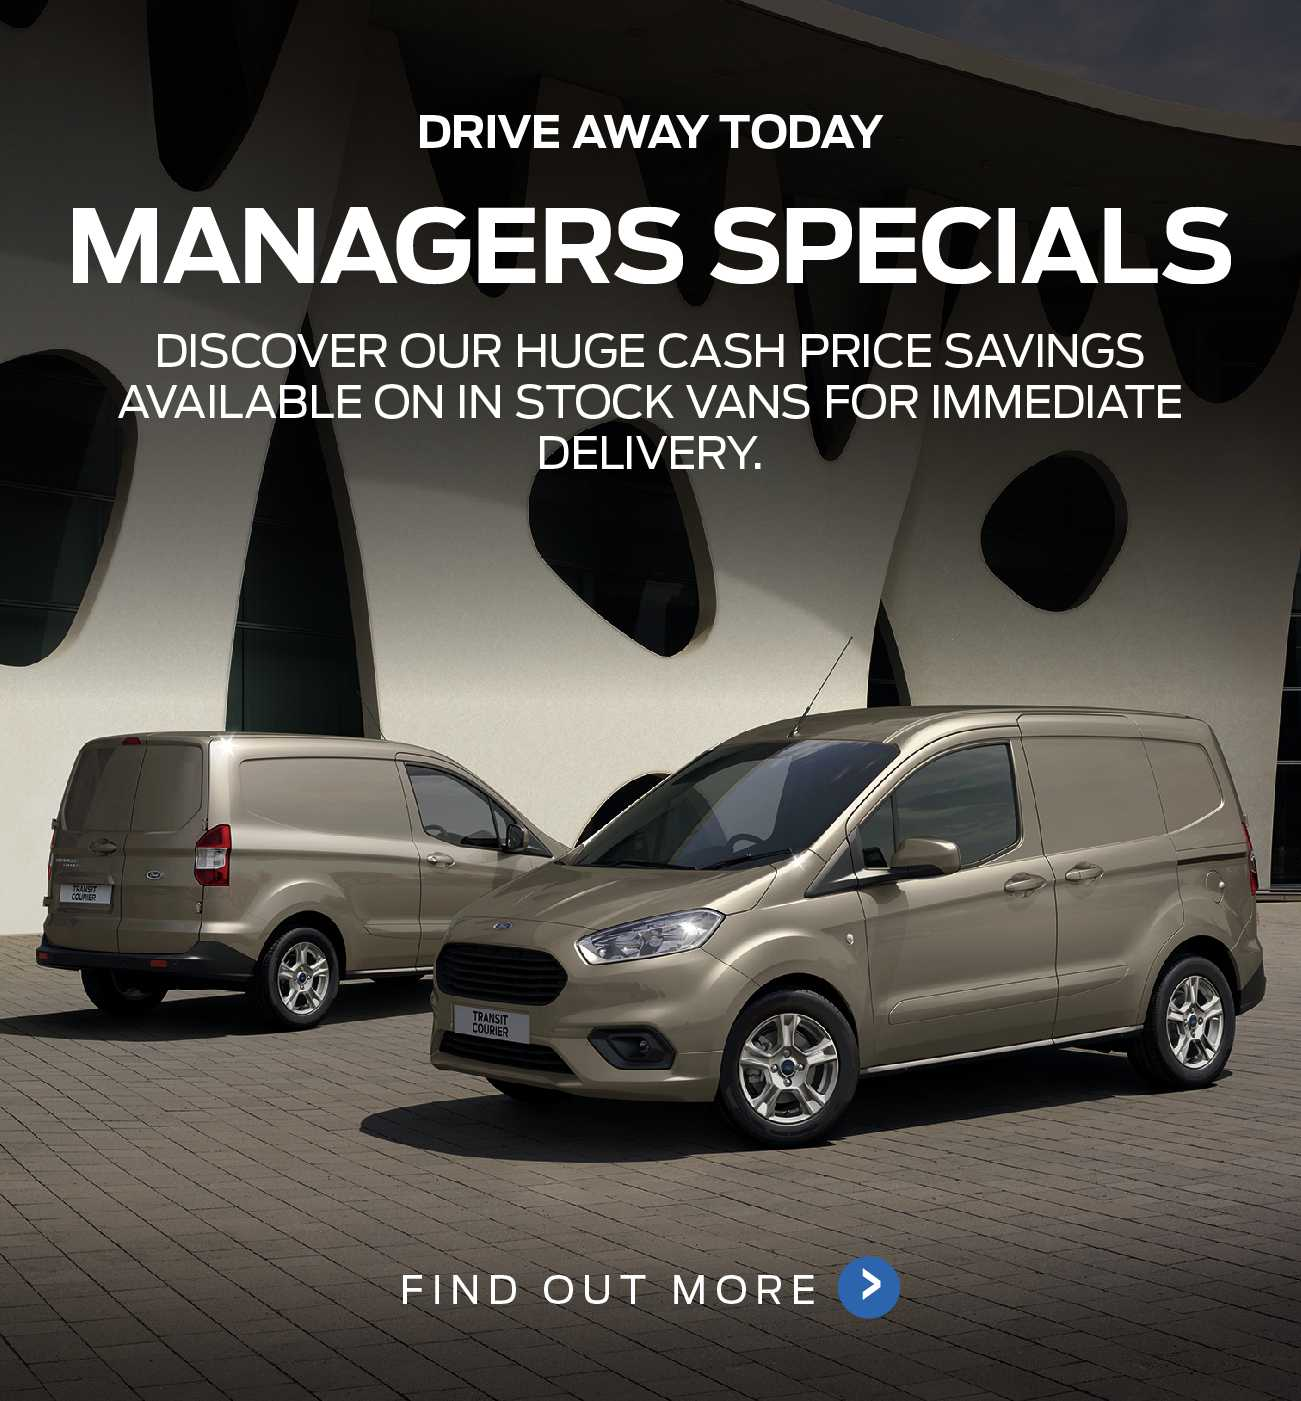 Ford Commercials Managers Specials